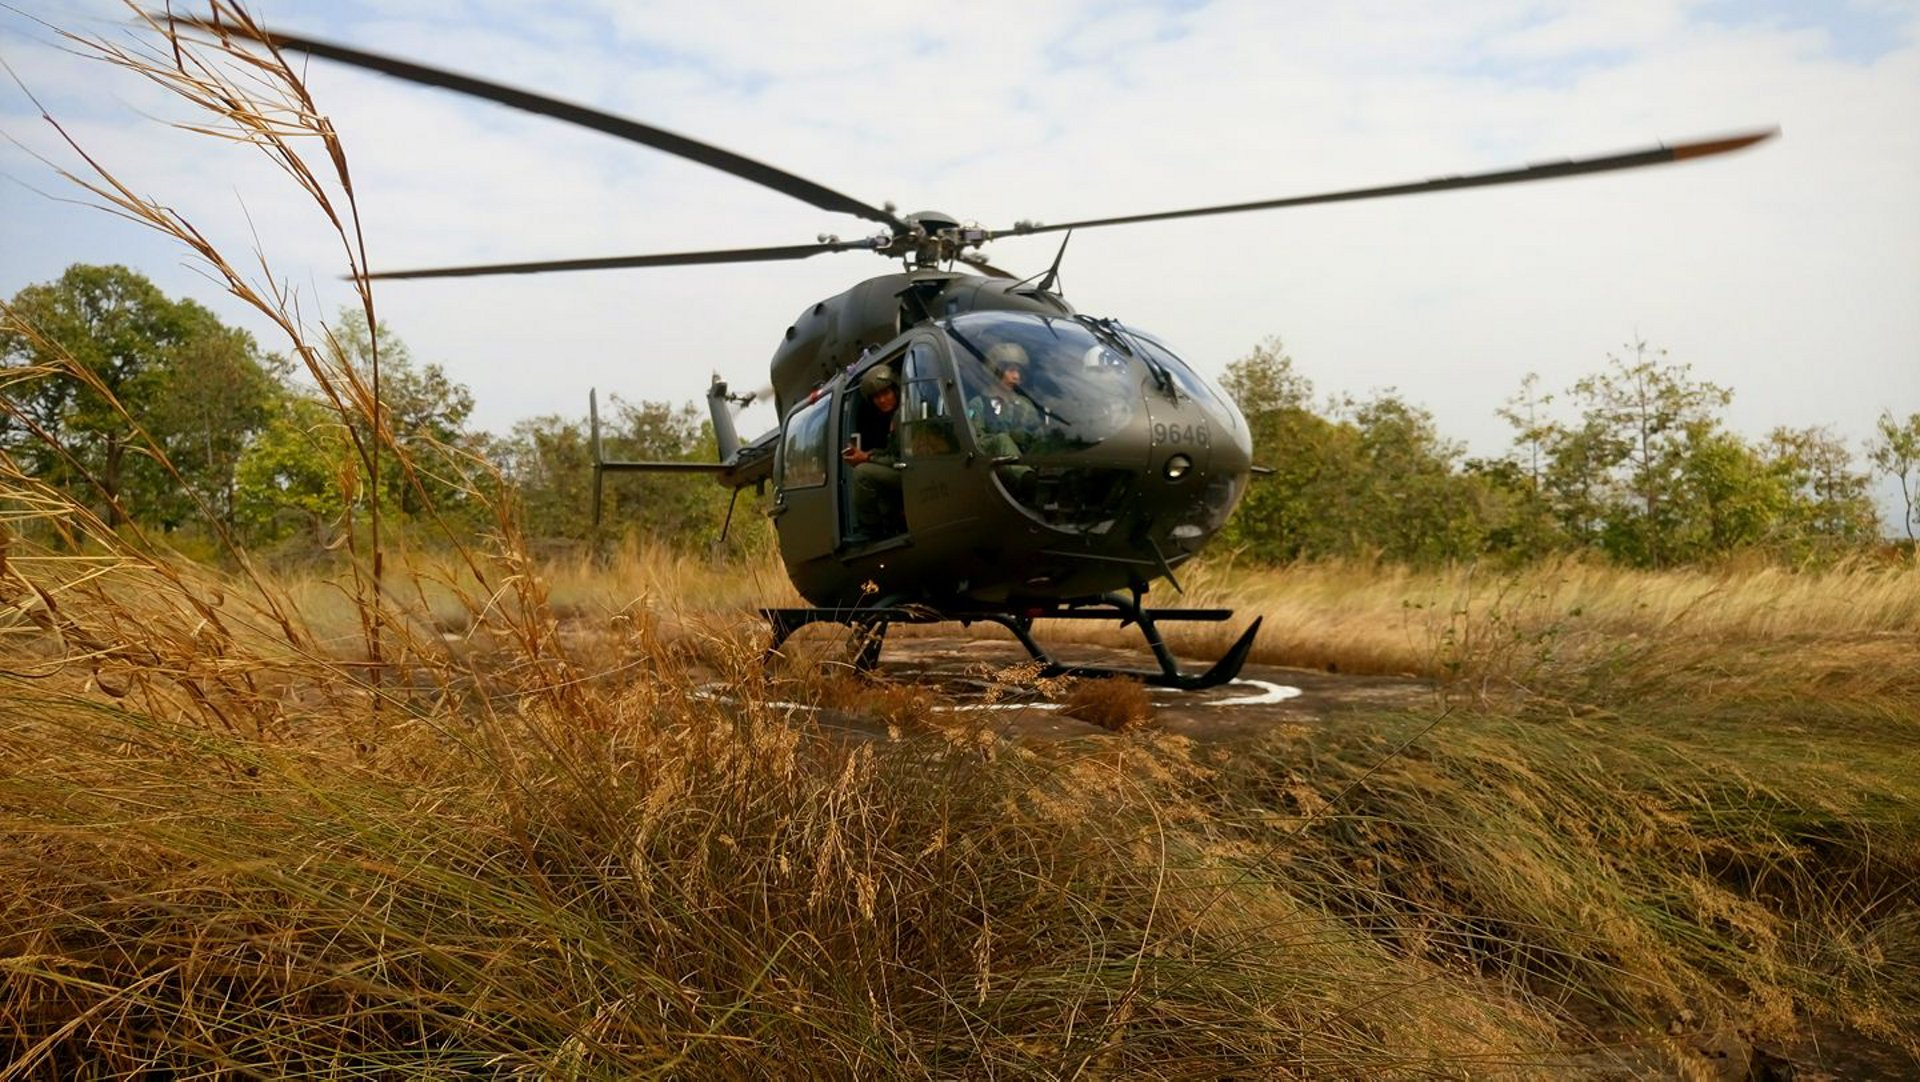 In 2014, the Royal Thai Army acquired six UH-72A Lakota helicopters from Airbus Group through the US's foreign military sales programme.